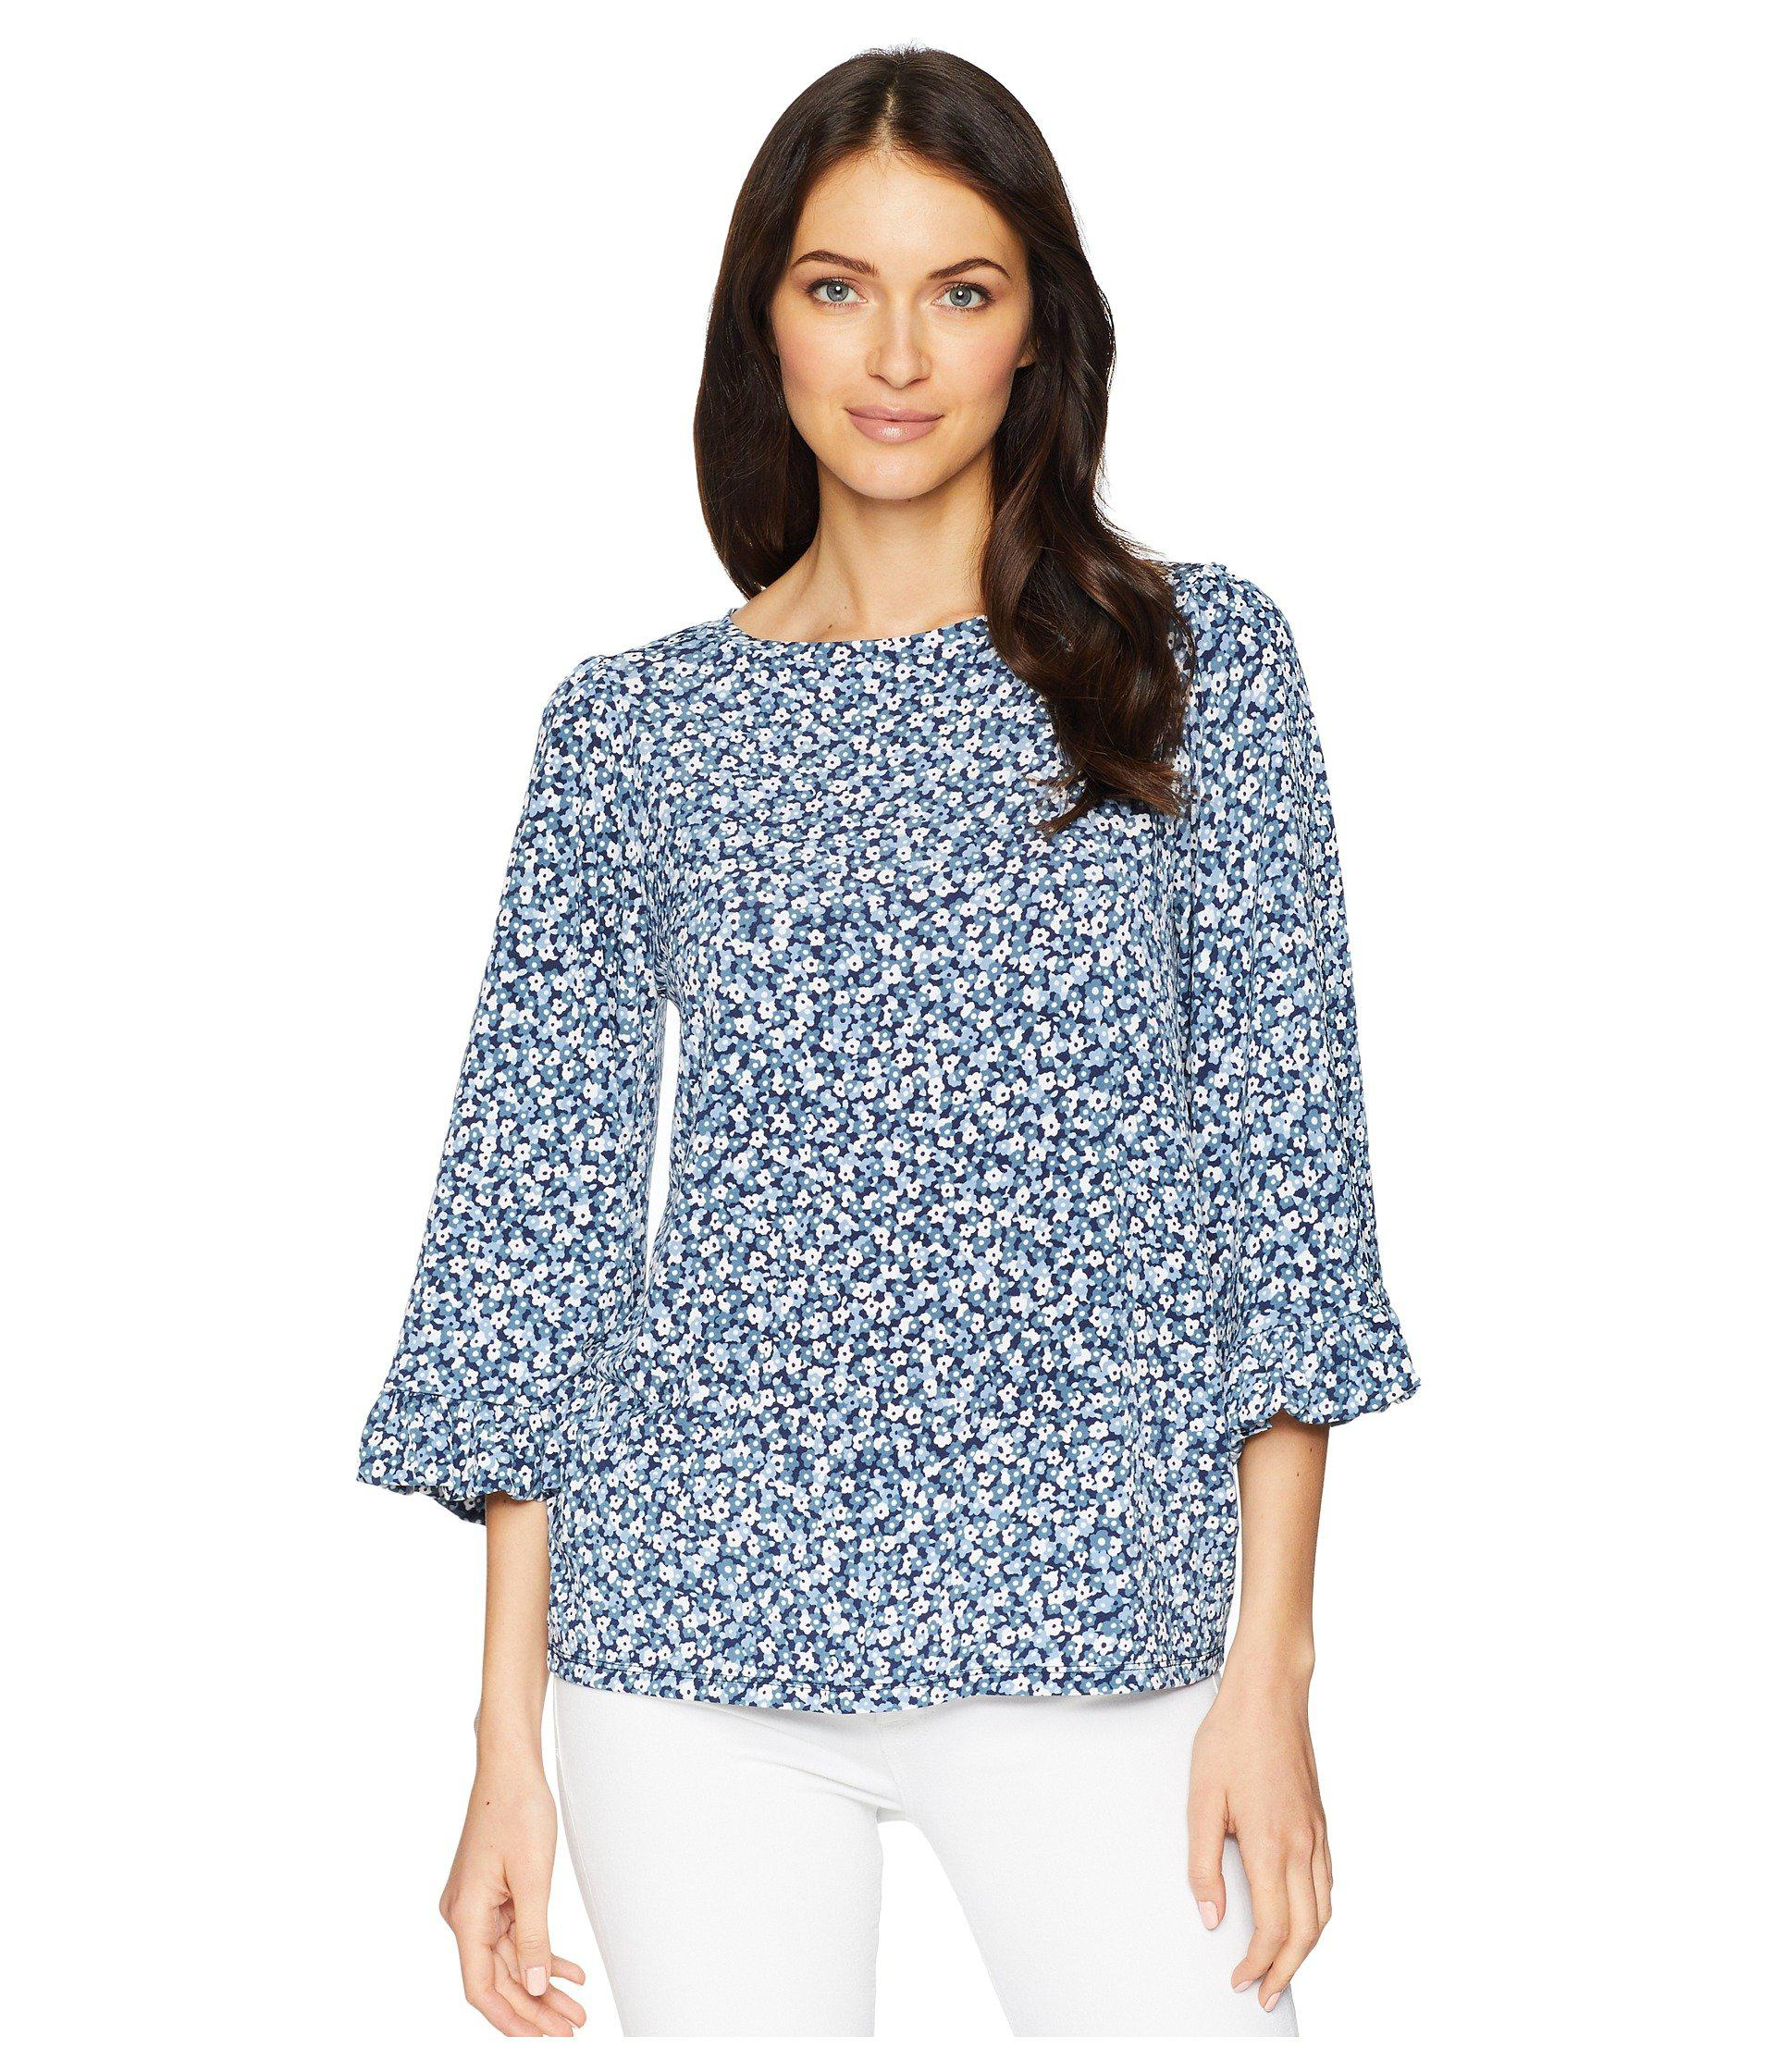 2e3154cc2aff5 Lyst - MICHAEL Michael Kors Collage Floral Flare Sleeve Top in Blue ...